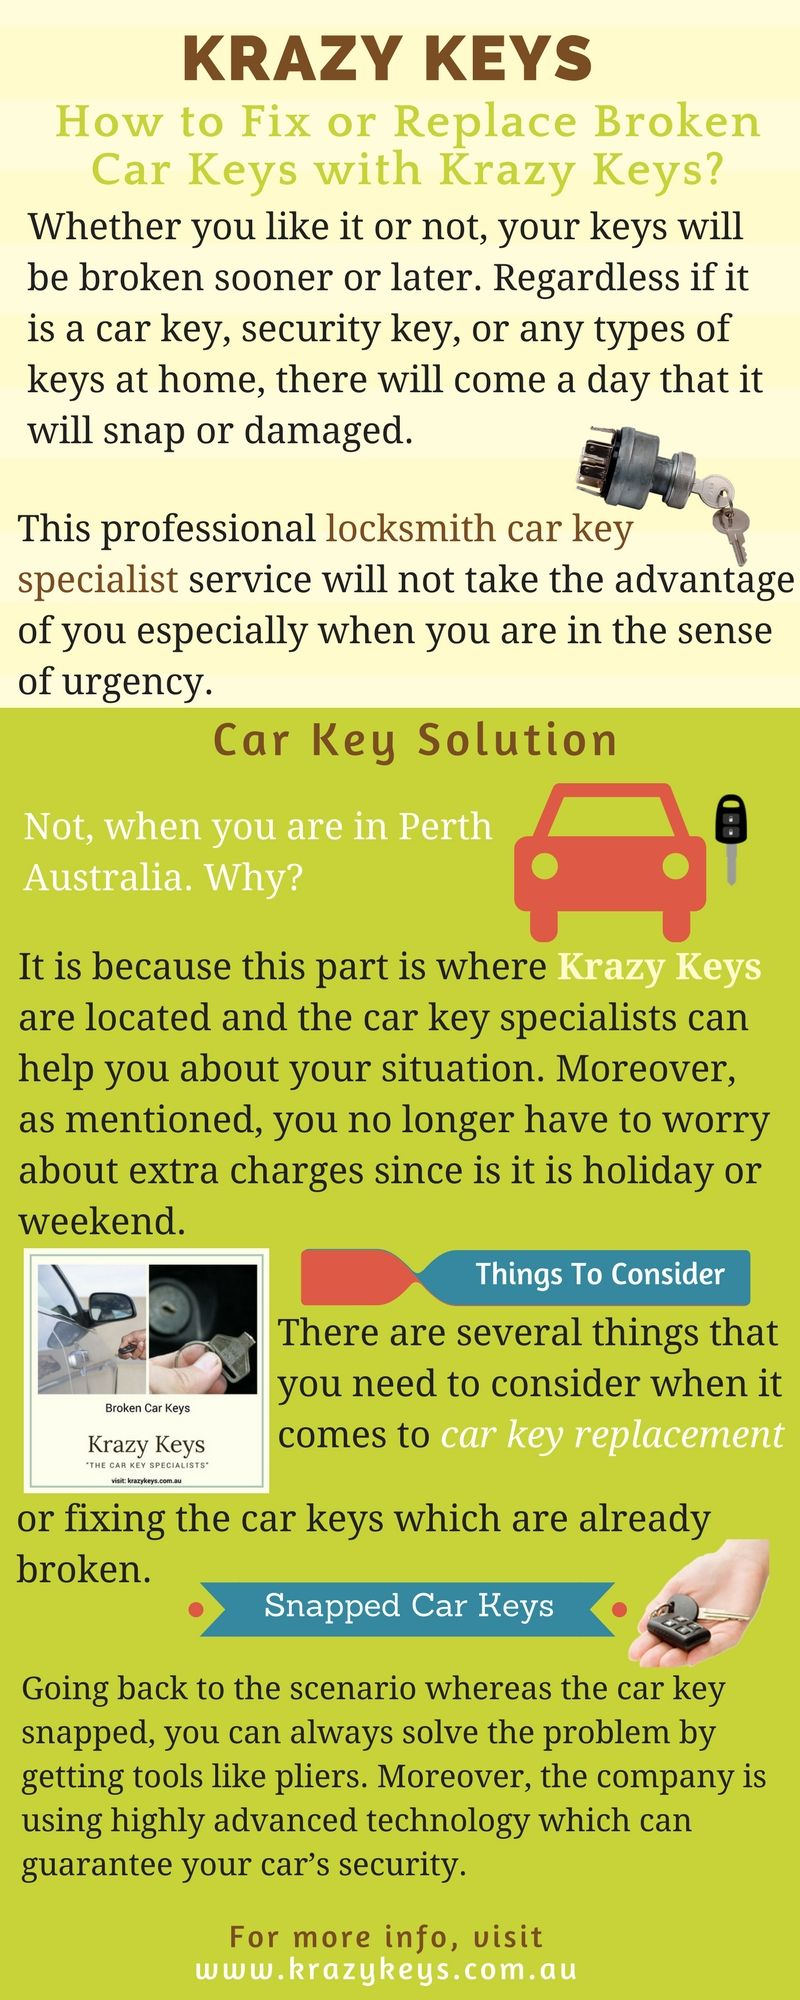 How To Fix Or Replace Broken Car Keys With Krazy Keys Krazy Keys